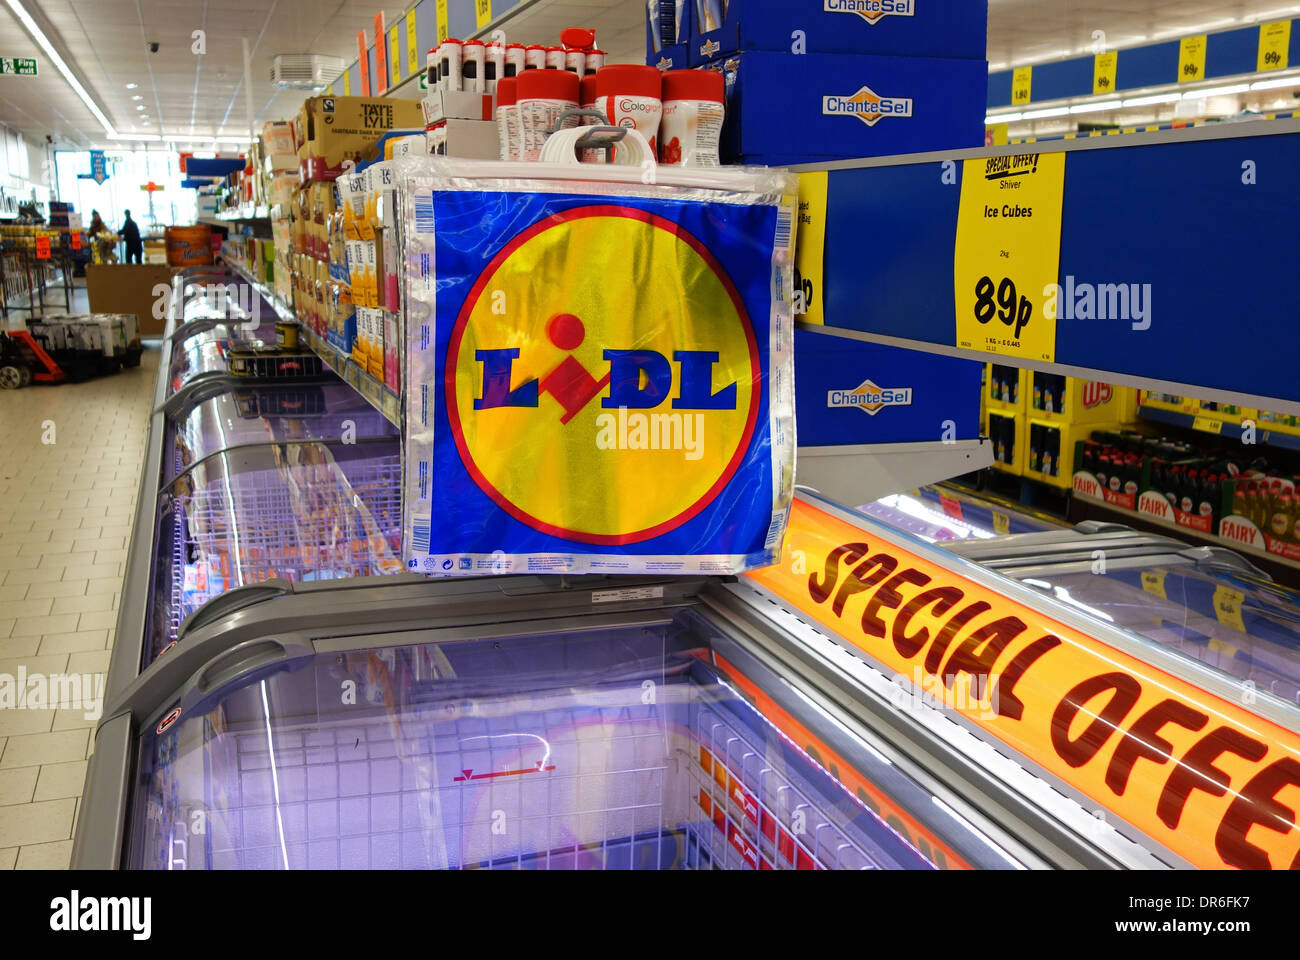 inside a lidl store, uk - Stock Image